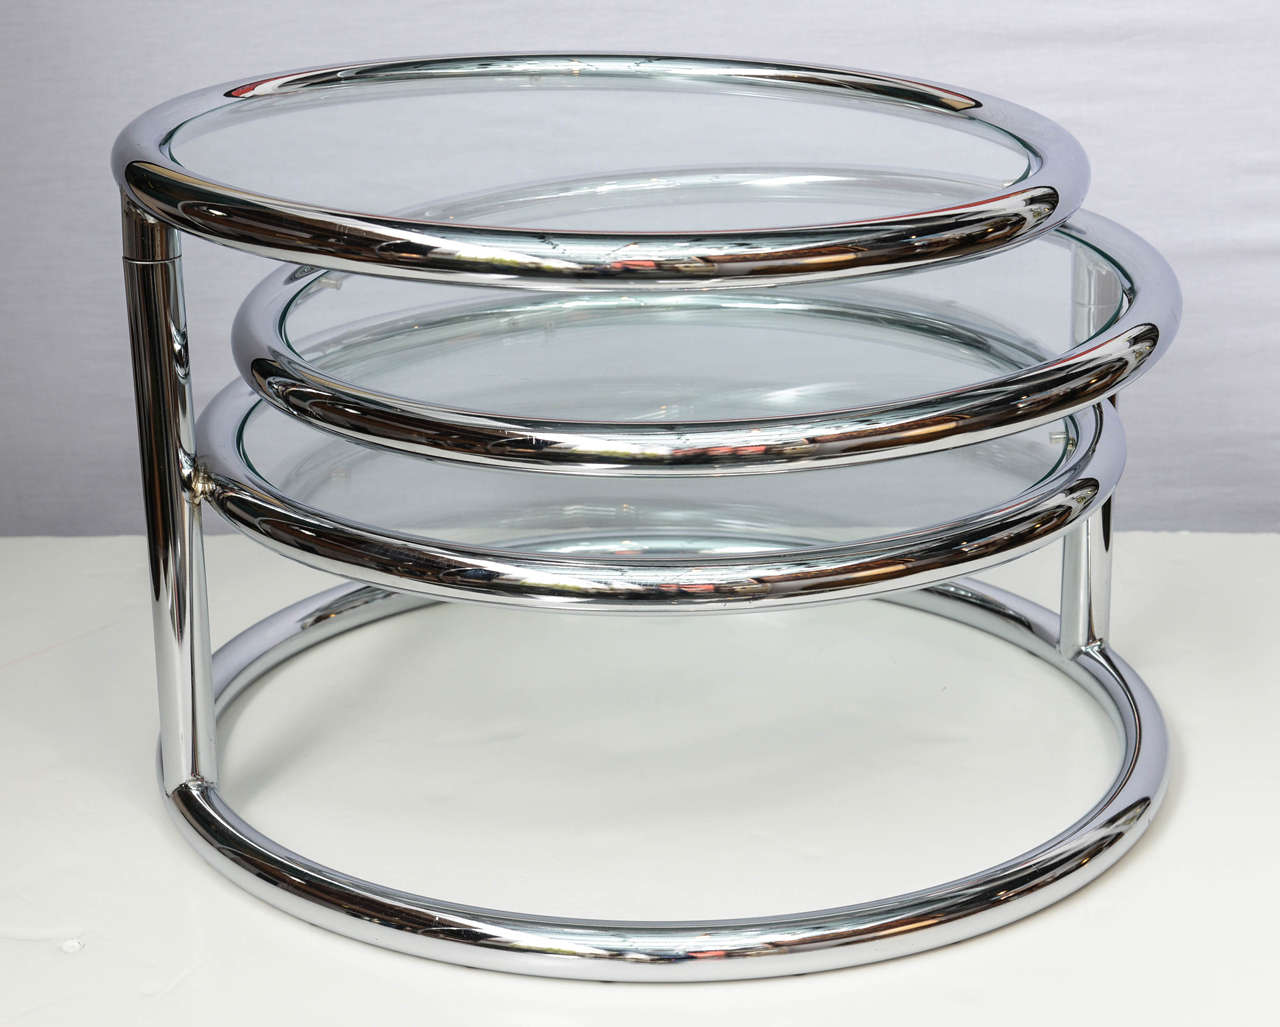 Options never cease with this wonderful coffee table. Three tiers of polished chrome tubular framed and glass easily fold and open to your need and pleasure. It can be used as a side table as a coffee table when is totally open and works well with